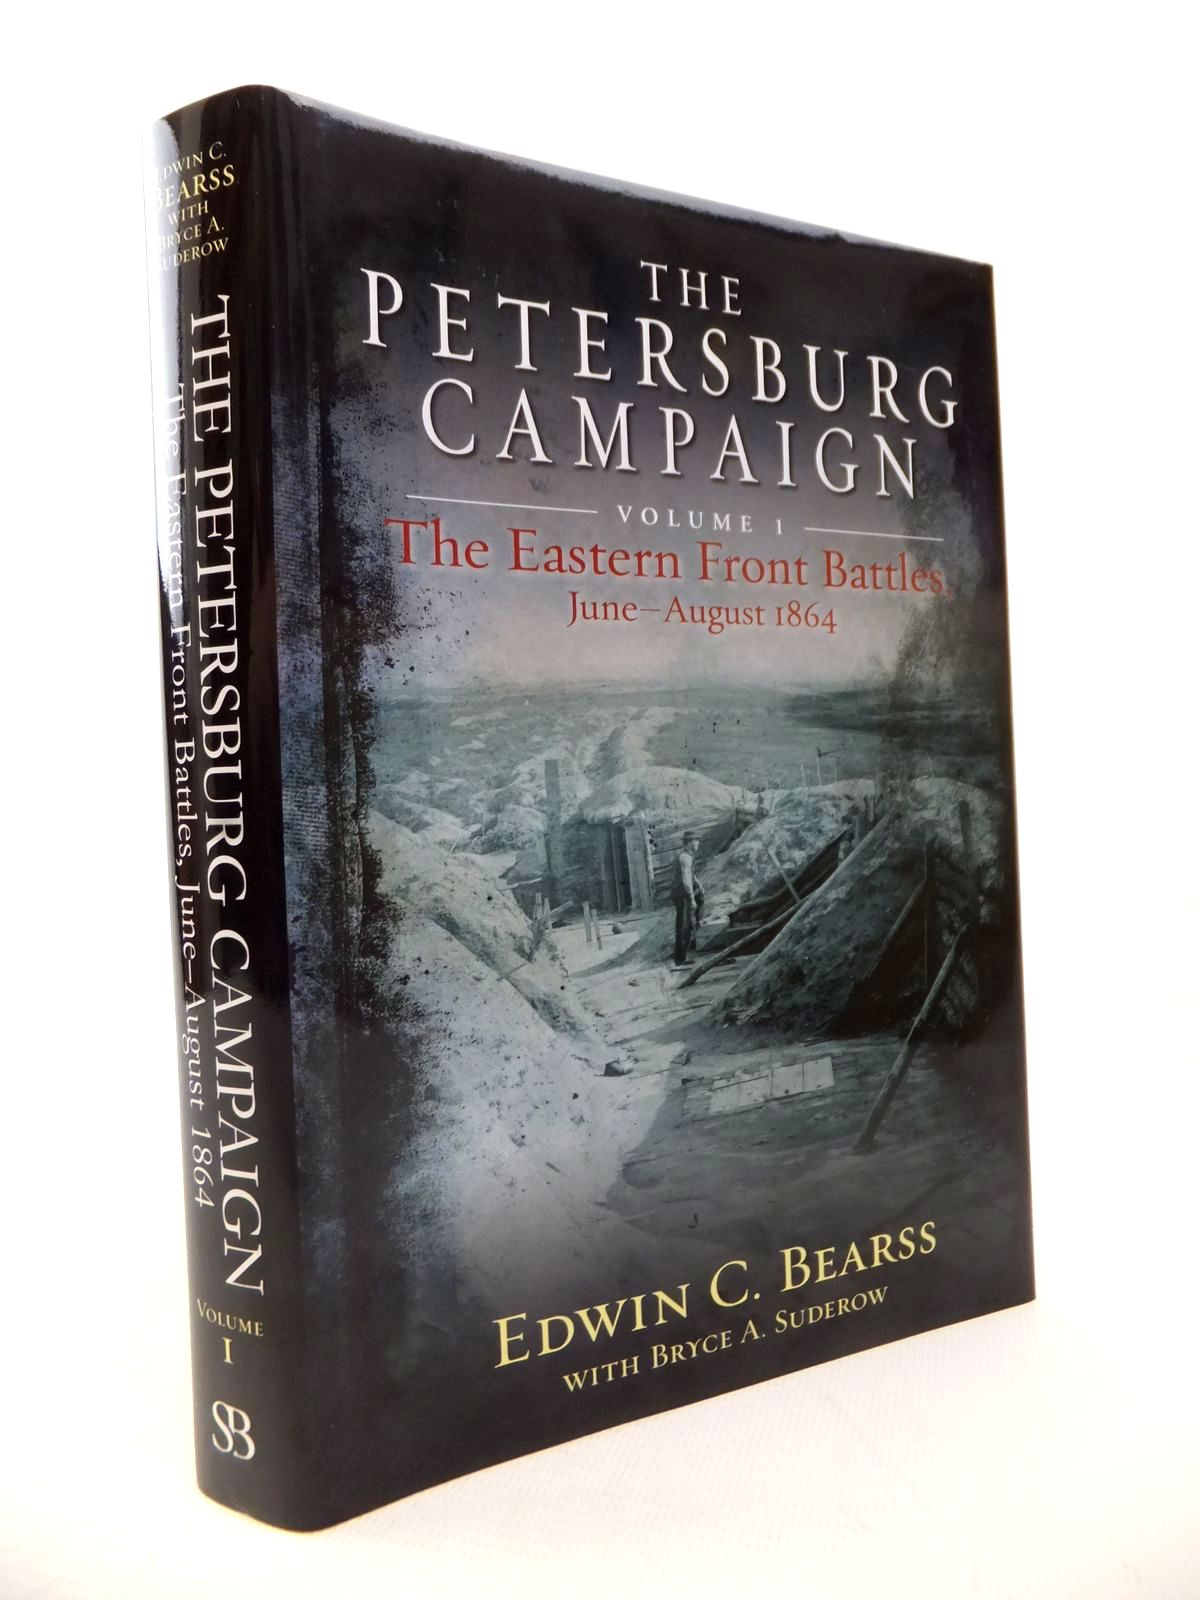 Photo of THE PETERSBURG CAMPAIGN VOL I: THE EASTERN FRONT BATTLES JUNE-AUGUST 1864 written by Bearss, Edwin C.<br />Suderow, Bryce published by Savas Beatie (STOCK CODE: 1813996)  for sale by Stella & Rose's Books